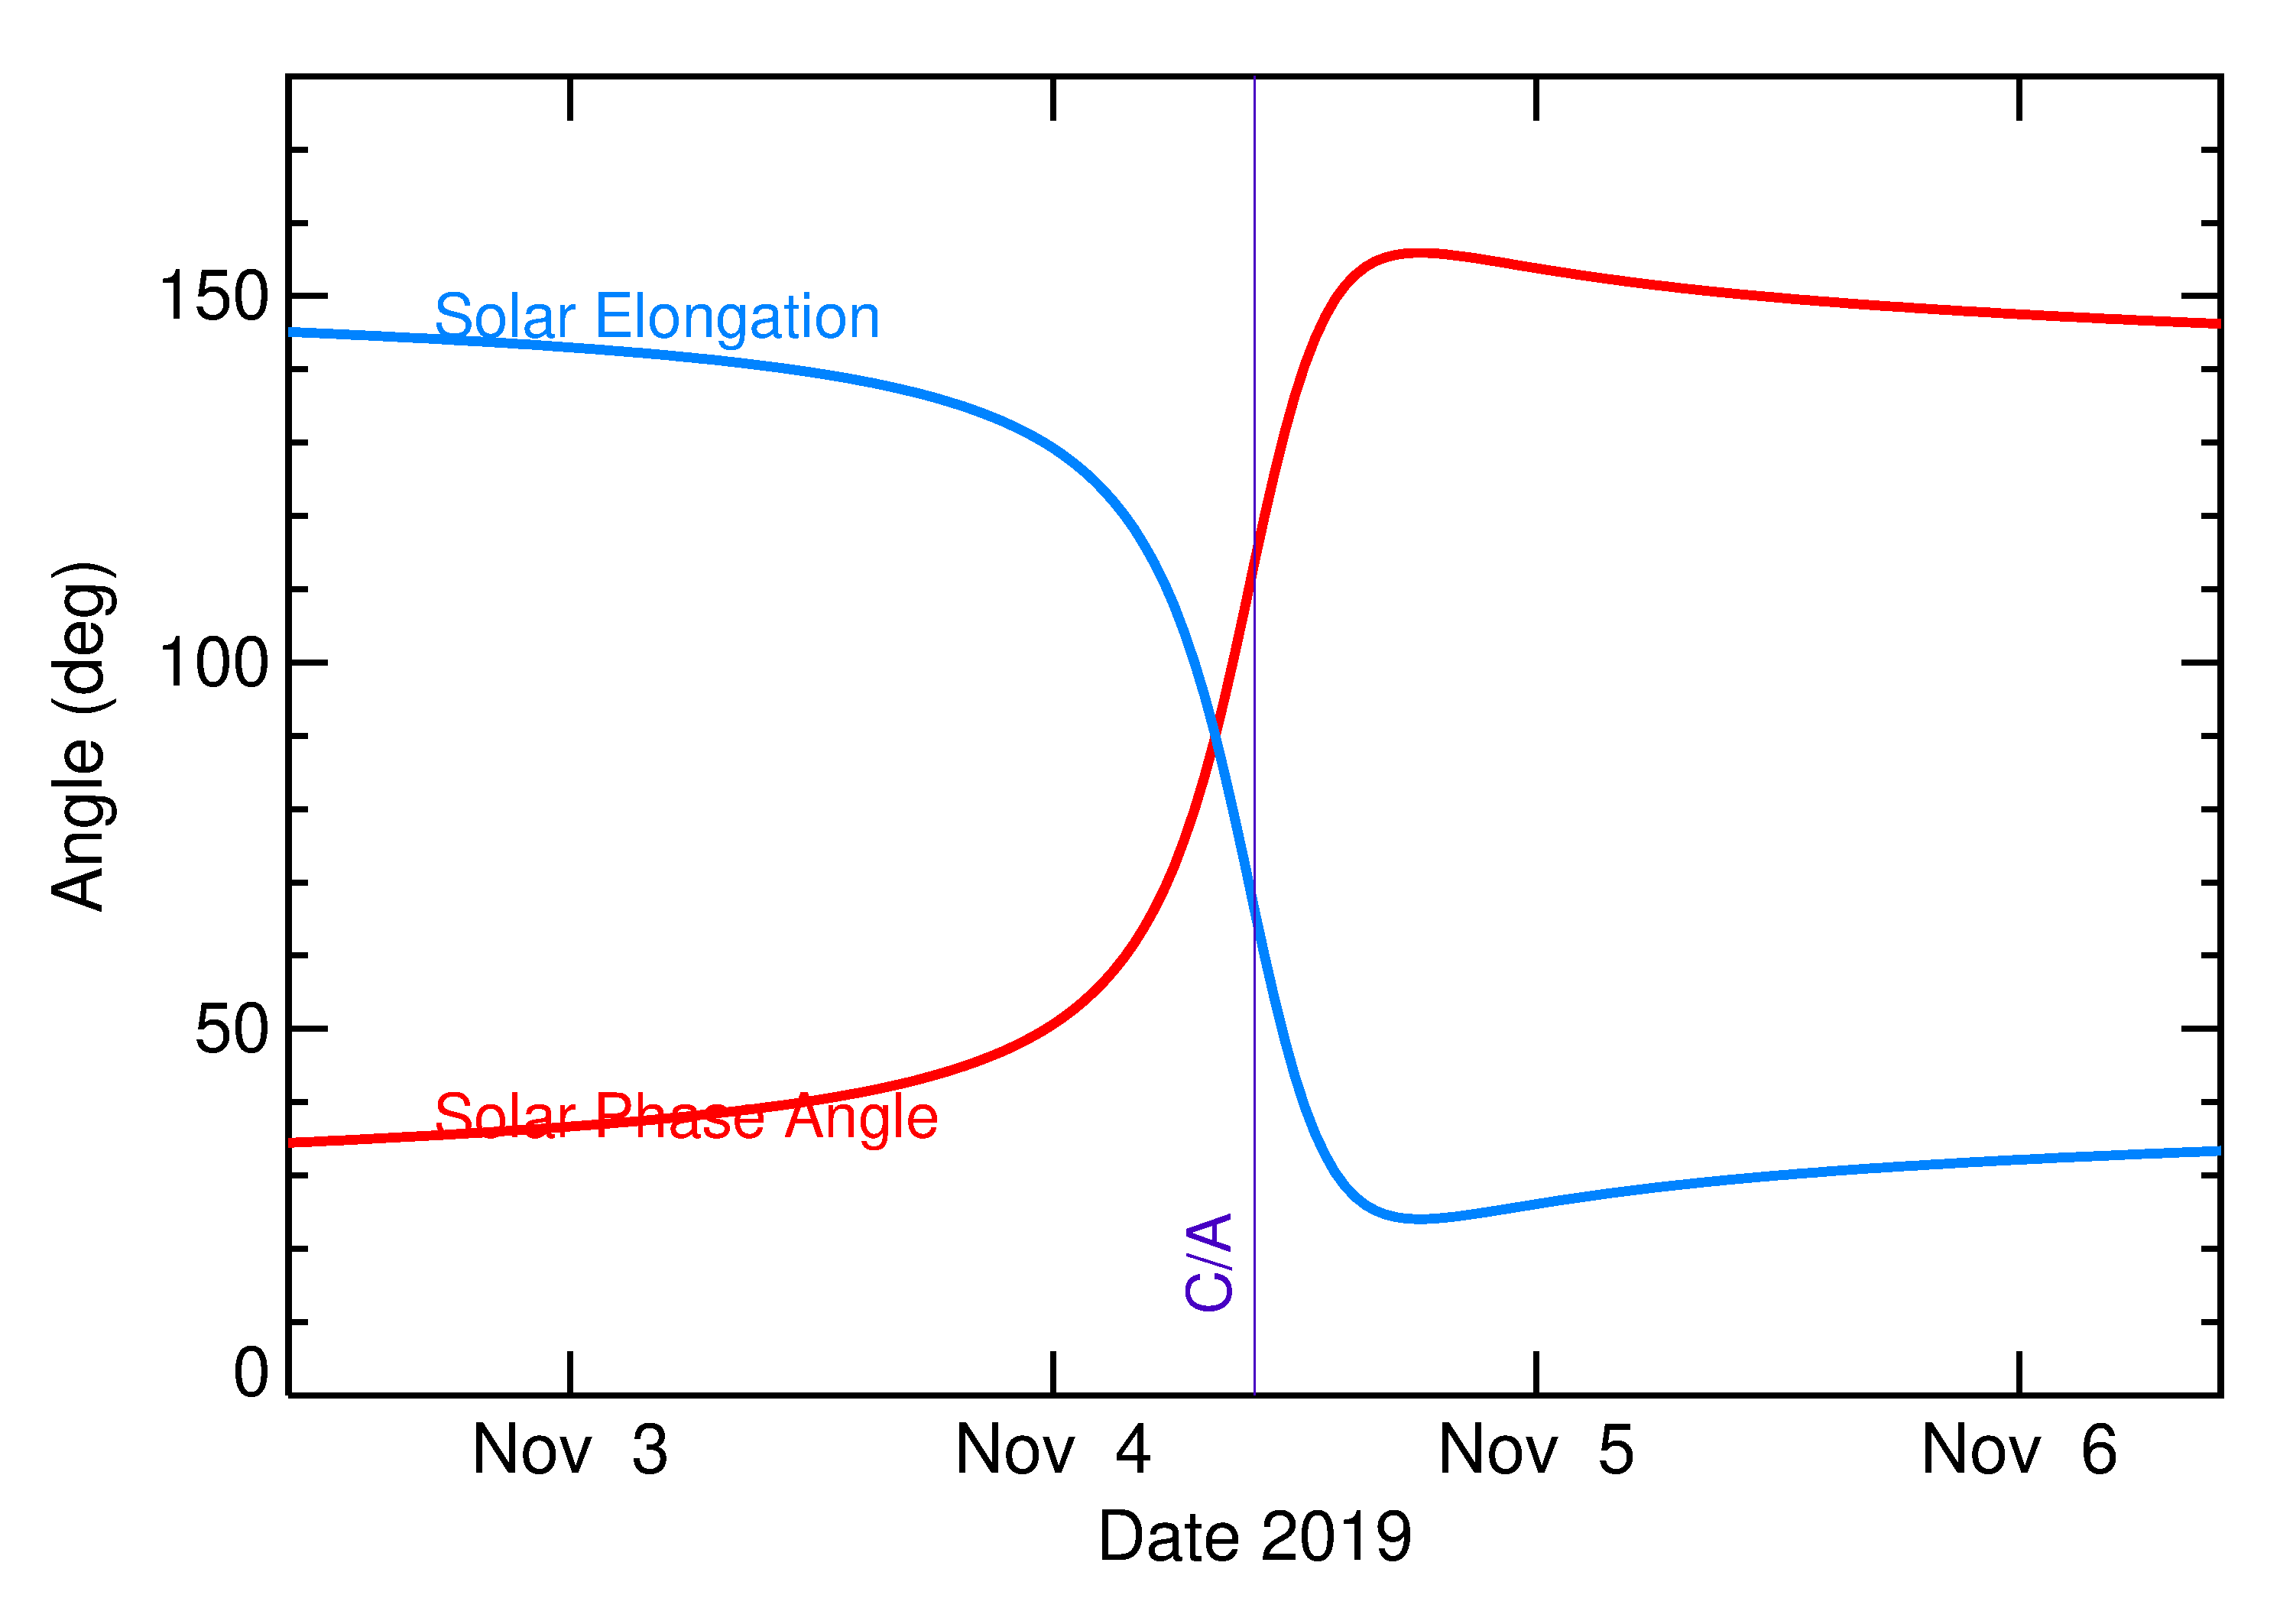 Solar Elongation and Solar Phase Angle of 2019 VD in the days around closest approach